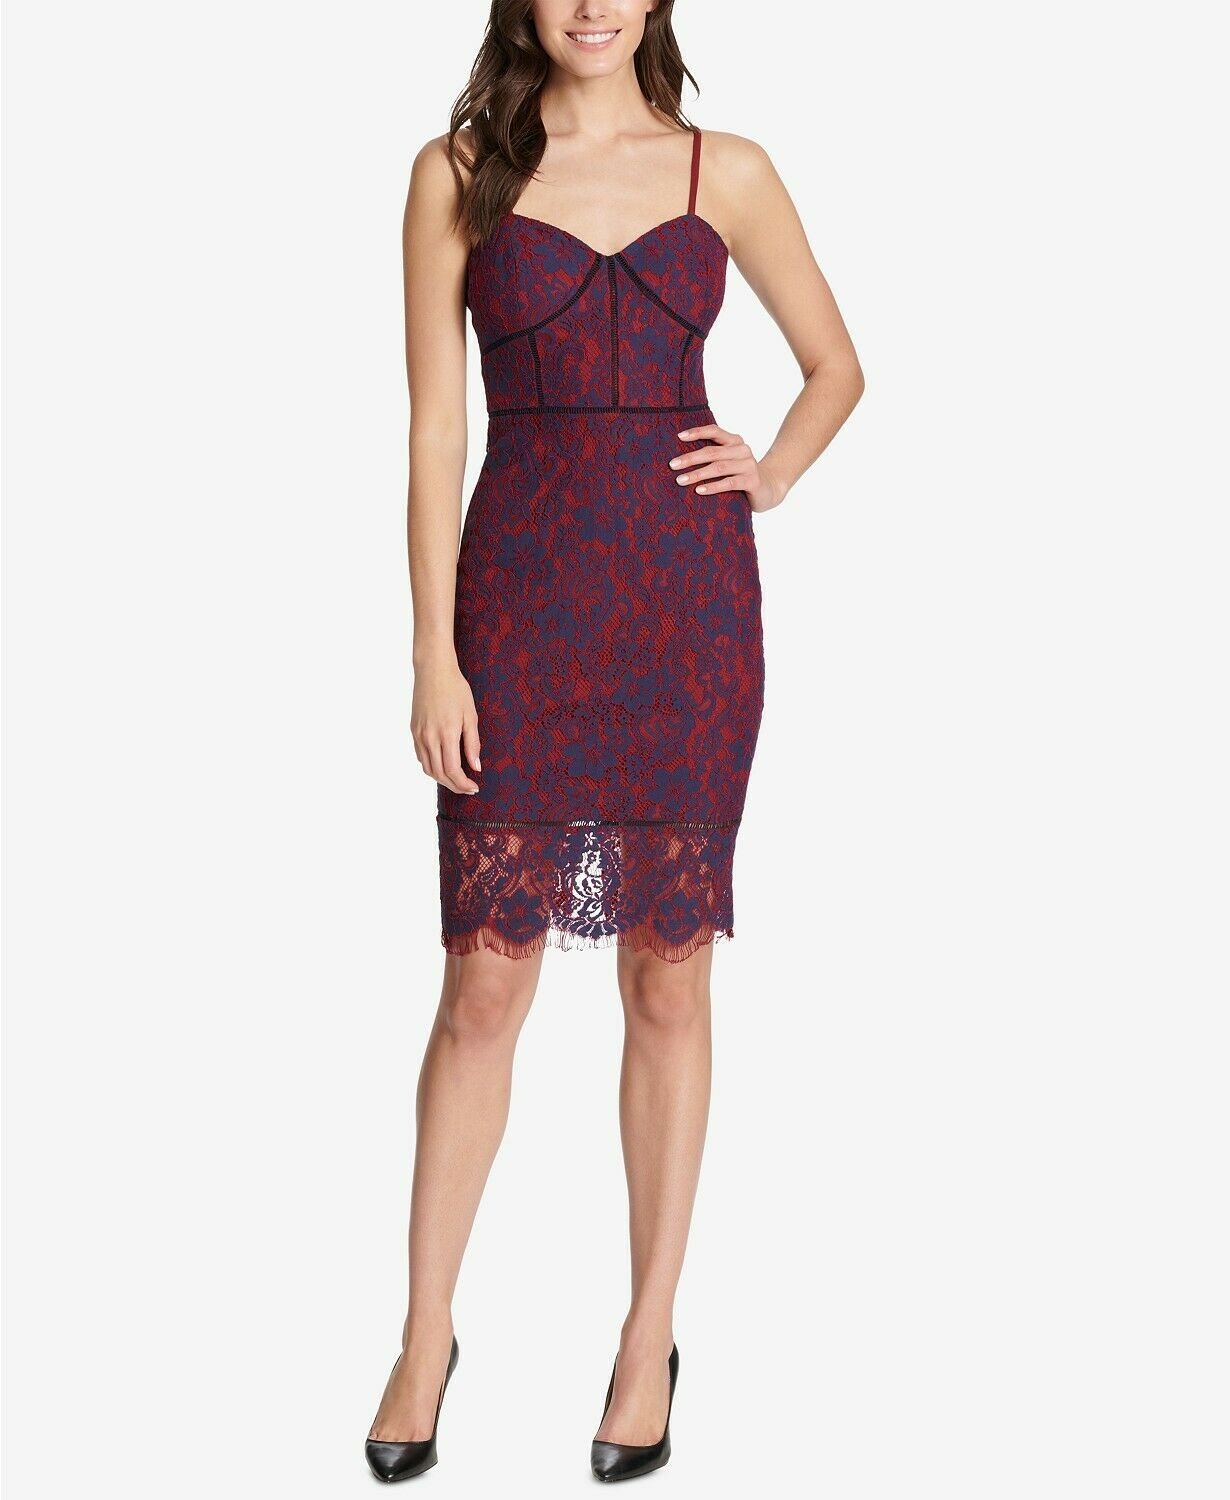 Red Skirt Simplicity Skintight Party Dress W//Sweetheart Lace Top